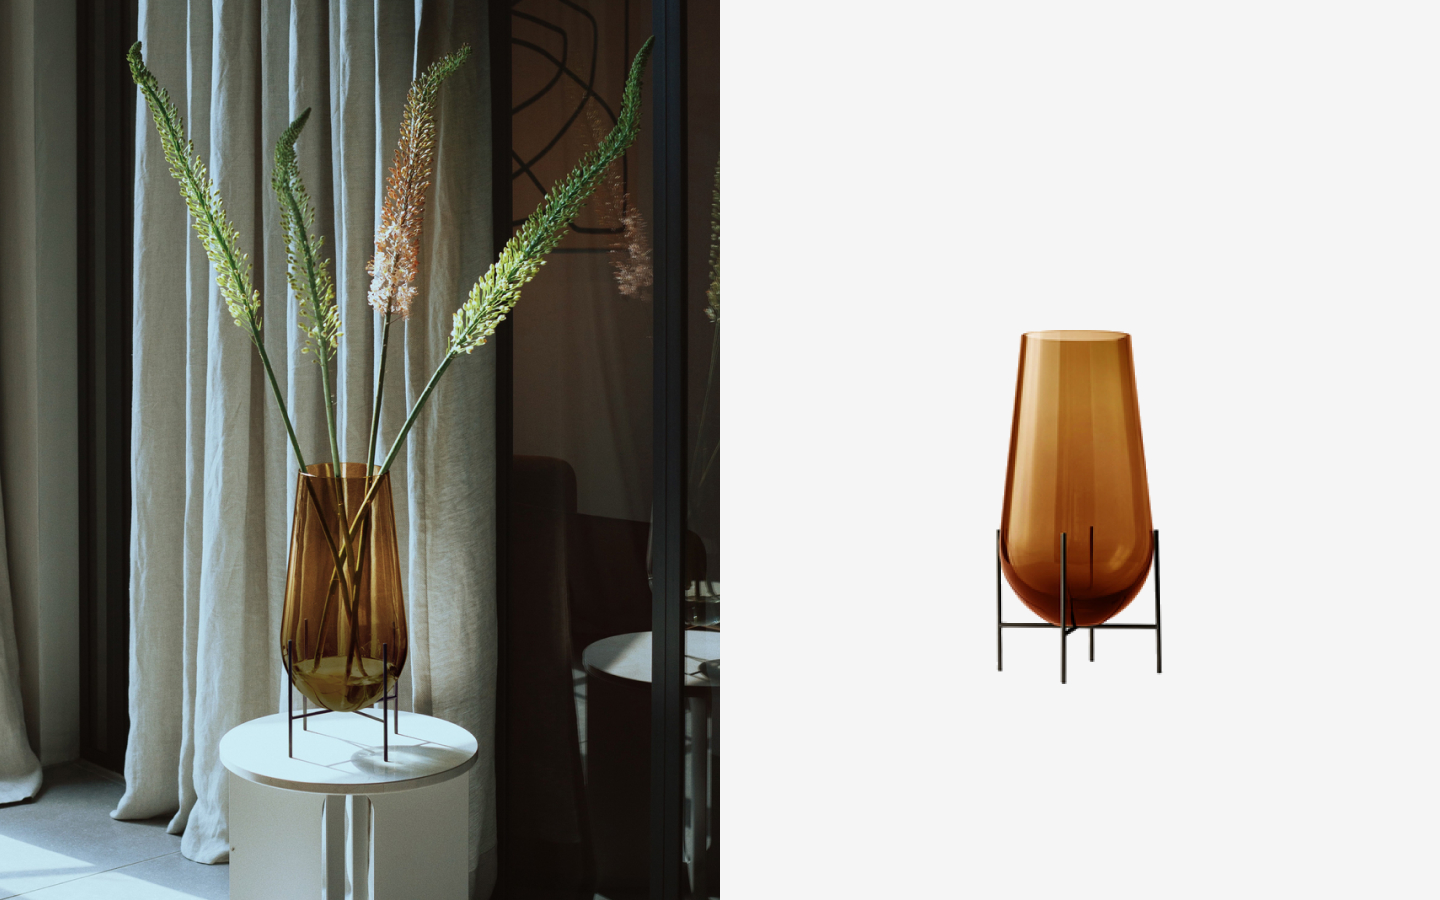 Amber glass vase with metal base